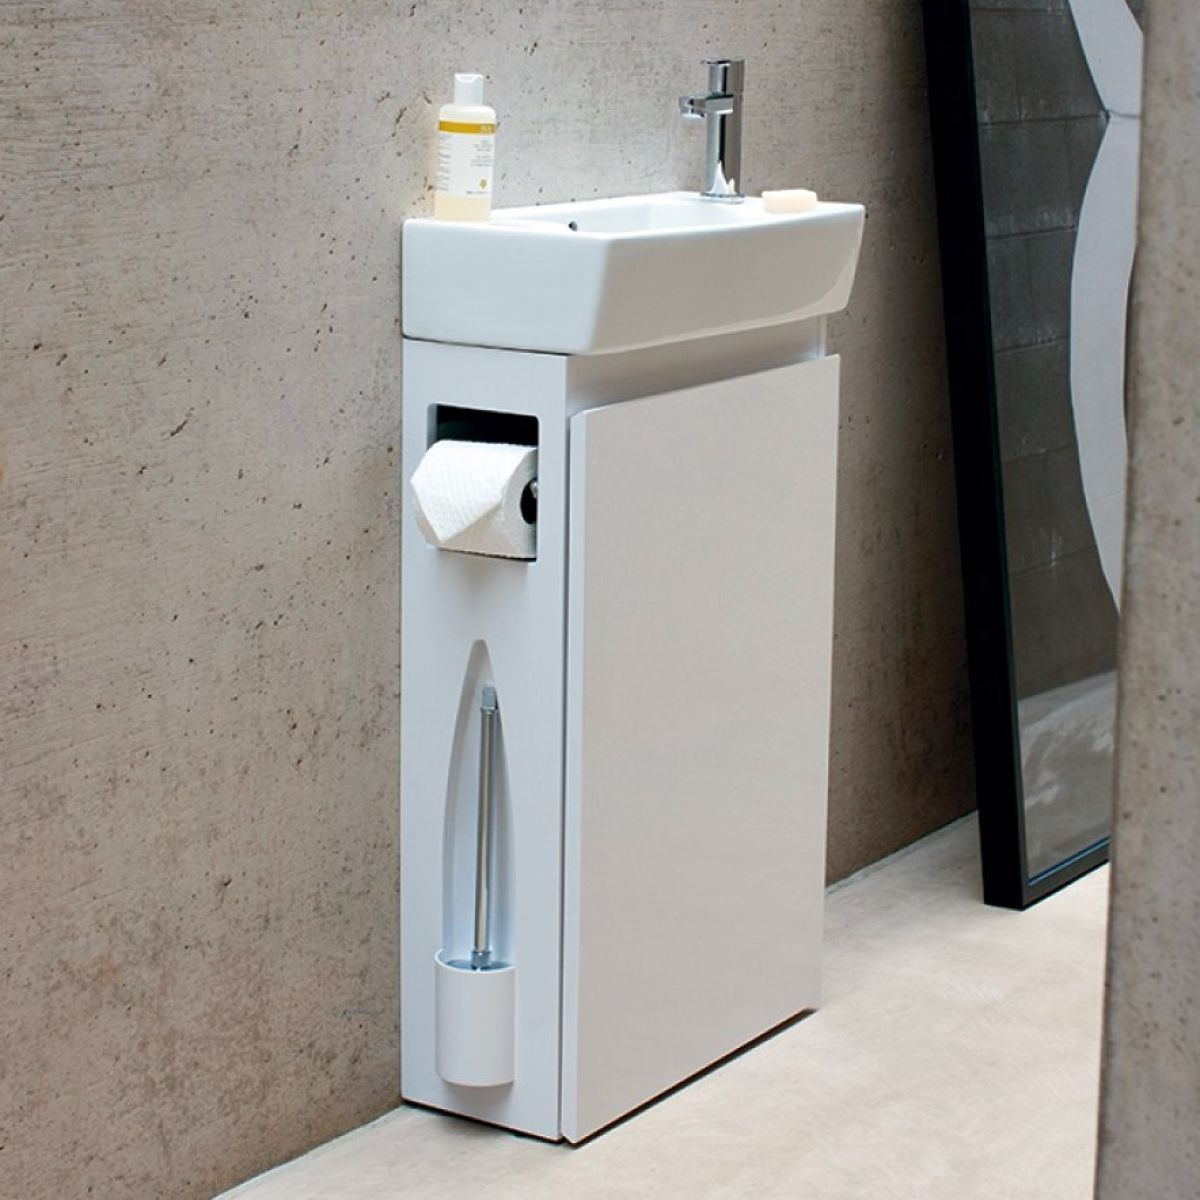 Aqua Cabinets All In One Cloakroom Unit With Basin